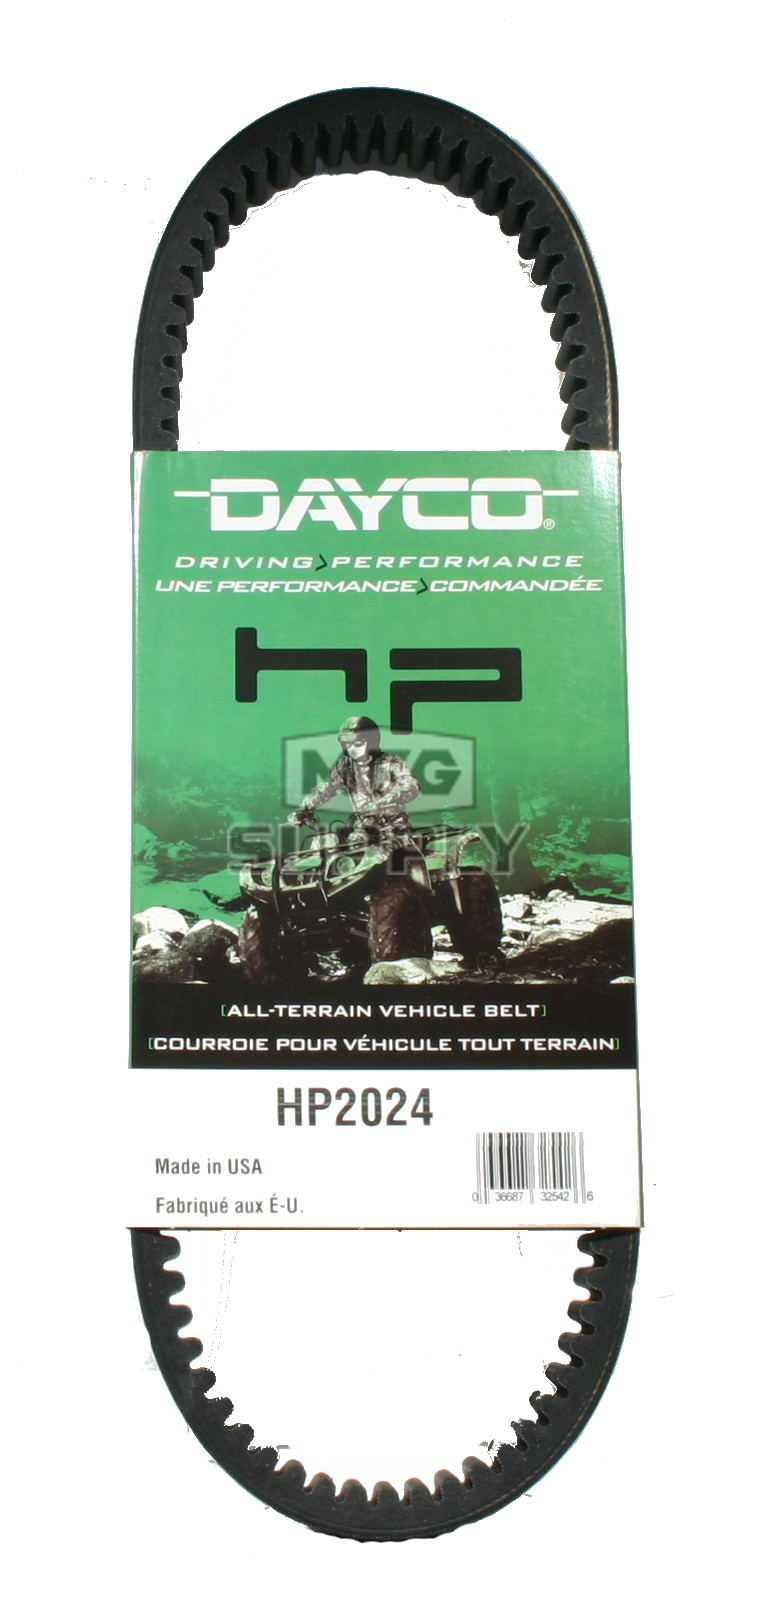 medium resolution of hp2024 dayco high performance utility vehicle belt fits kawasaki mule 1000 2010